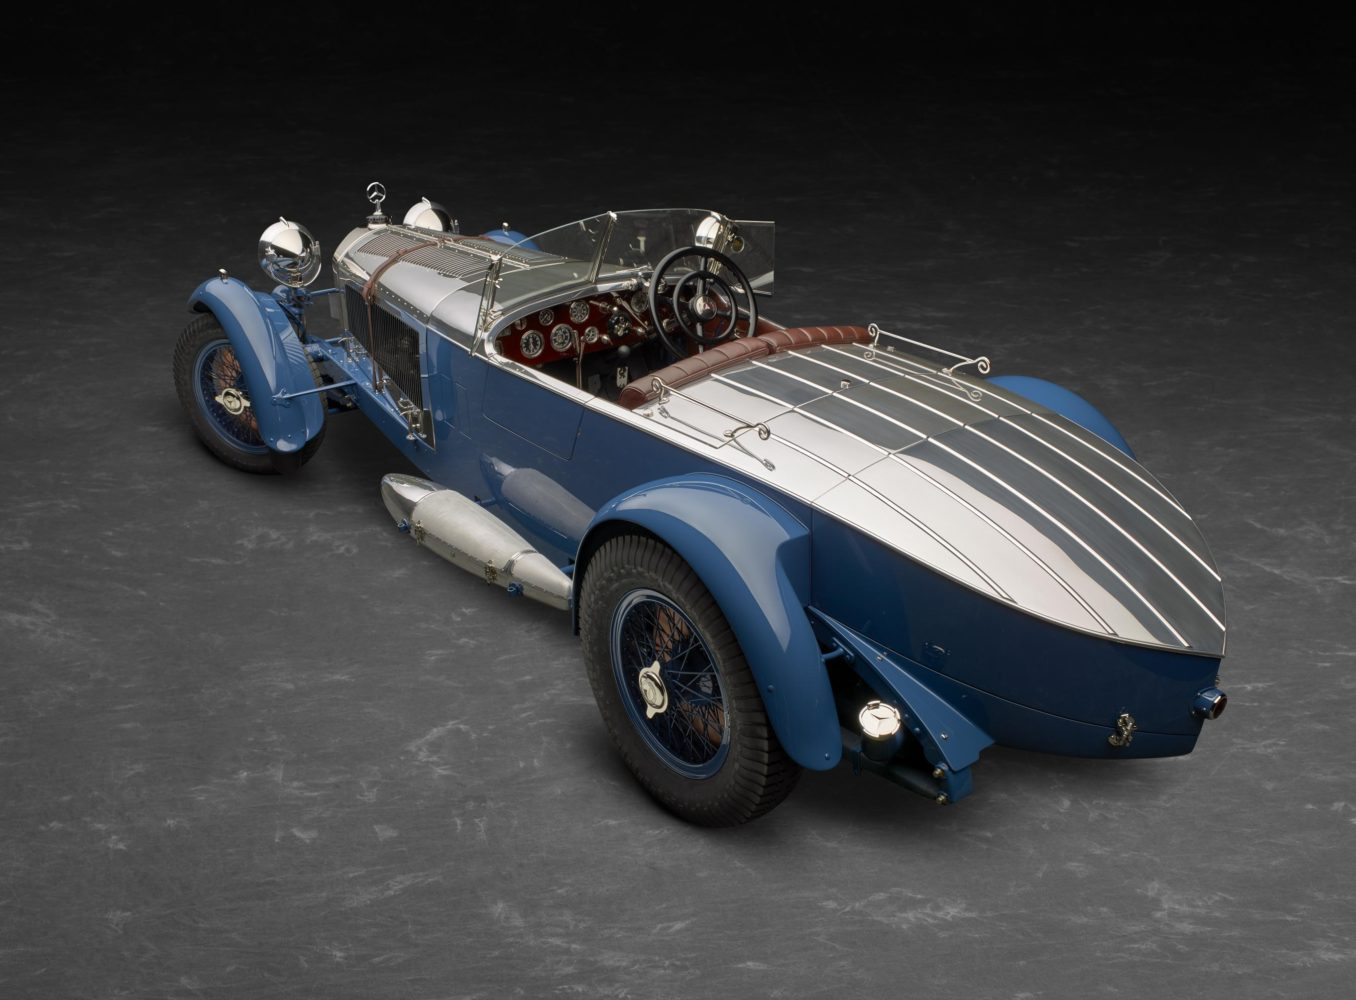 'WORLD'S FINEST CAR' COMING TO CONCOURS OF ELEGANCE 2018